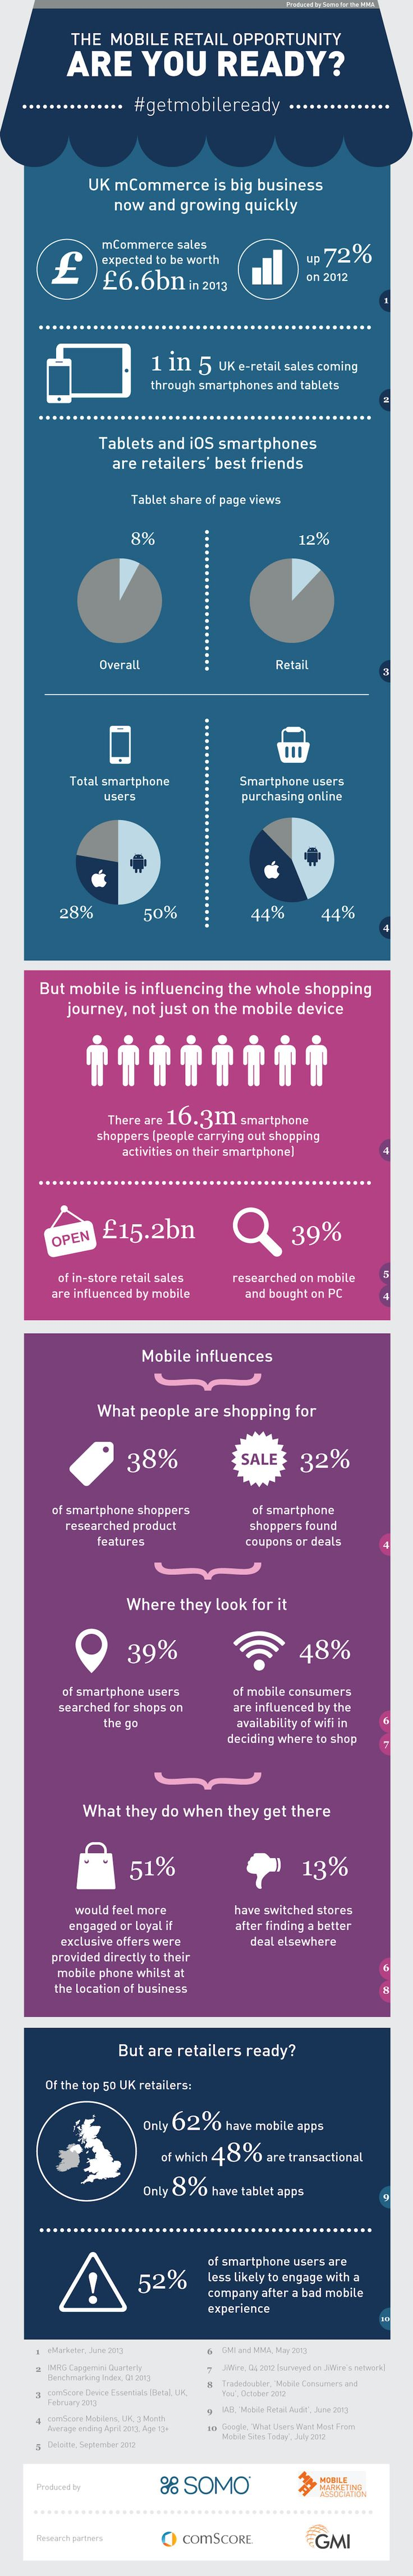 The Mobile Retail Opportunity: Are You Ready? | Mobile Marketing Association